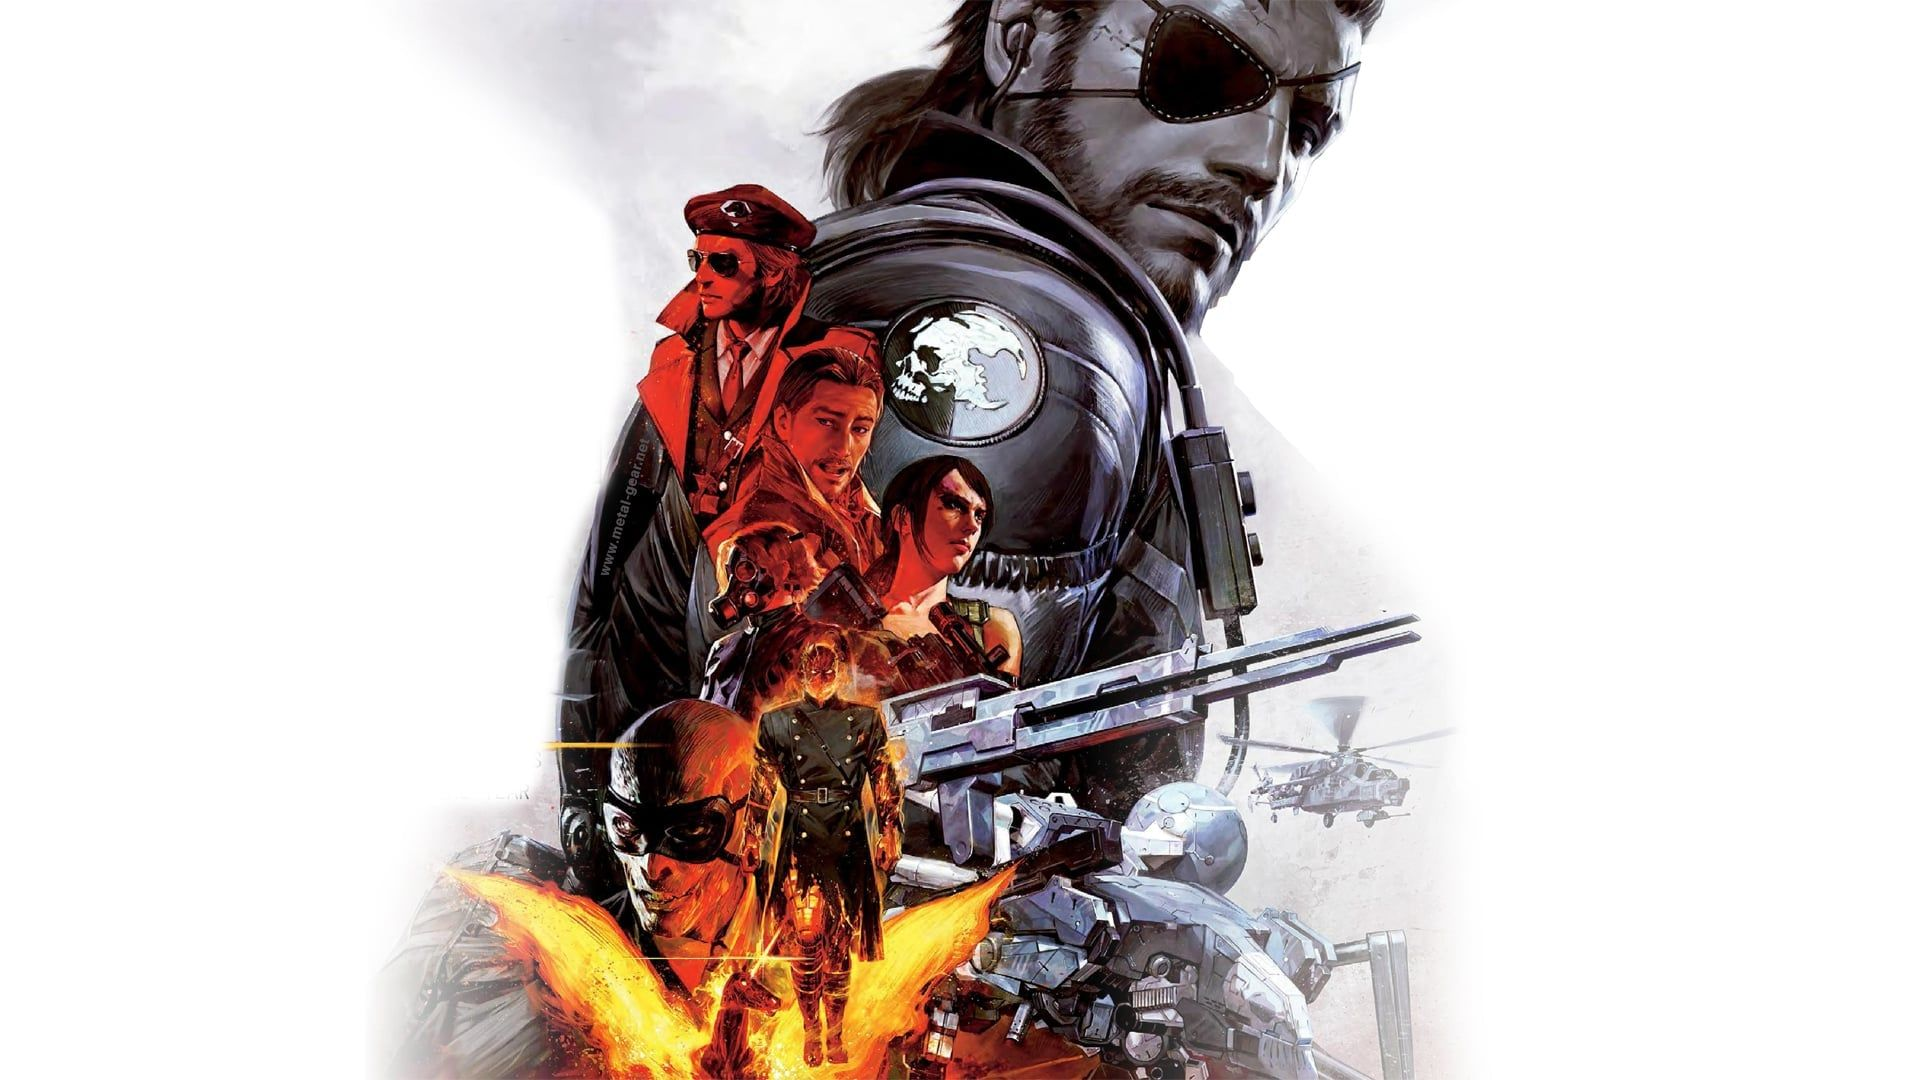 metal gear solid 5 the phantom pain hd wallpapers | 20+ games